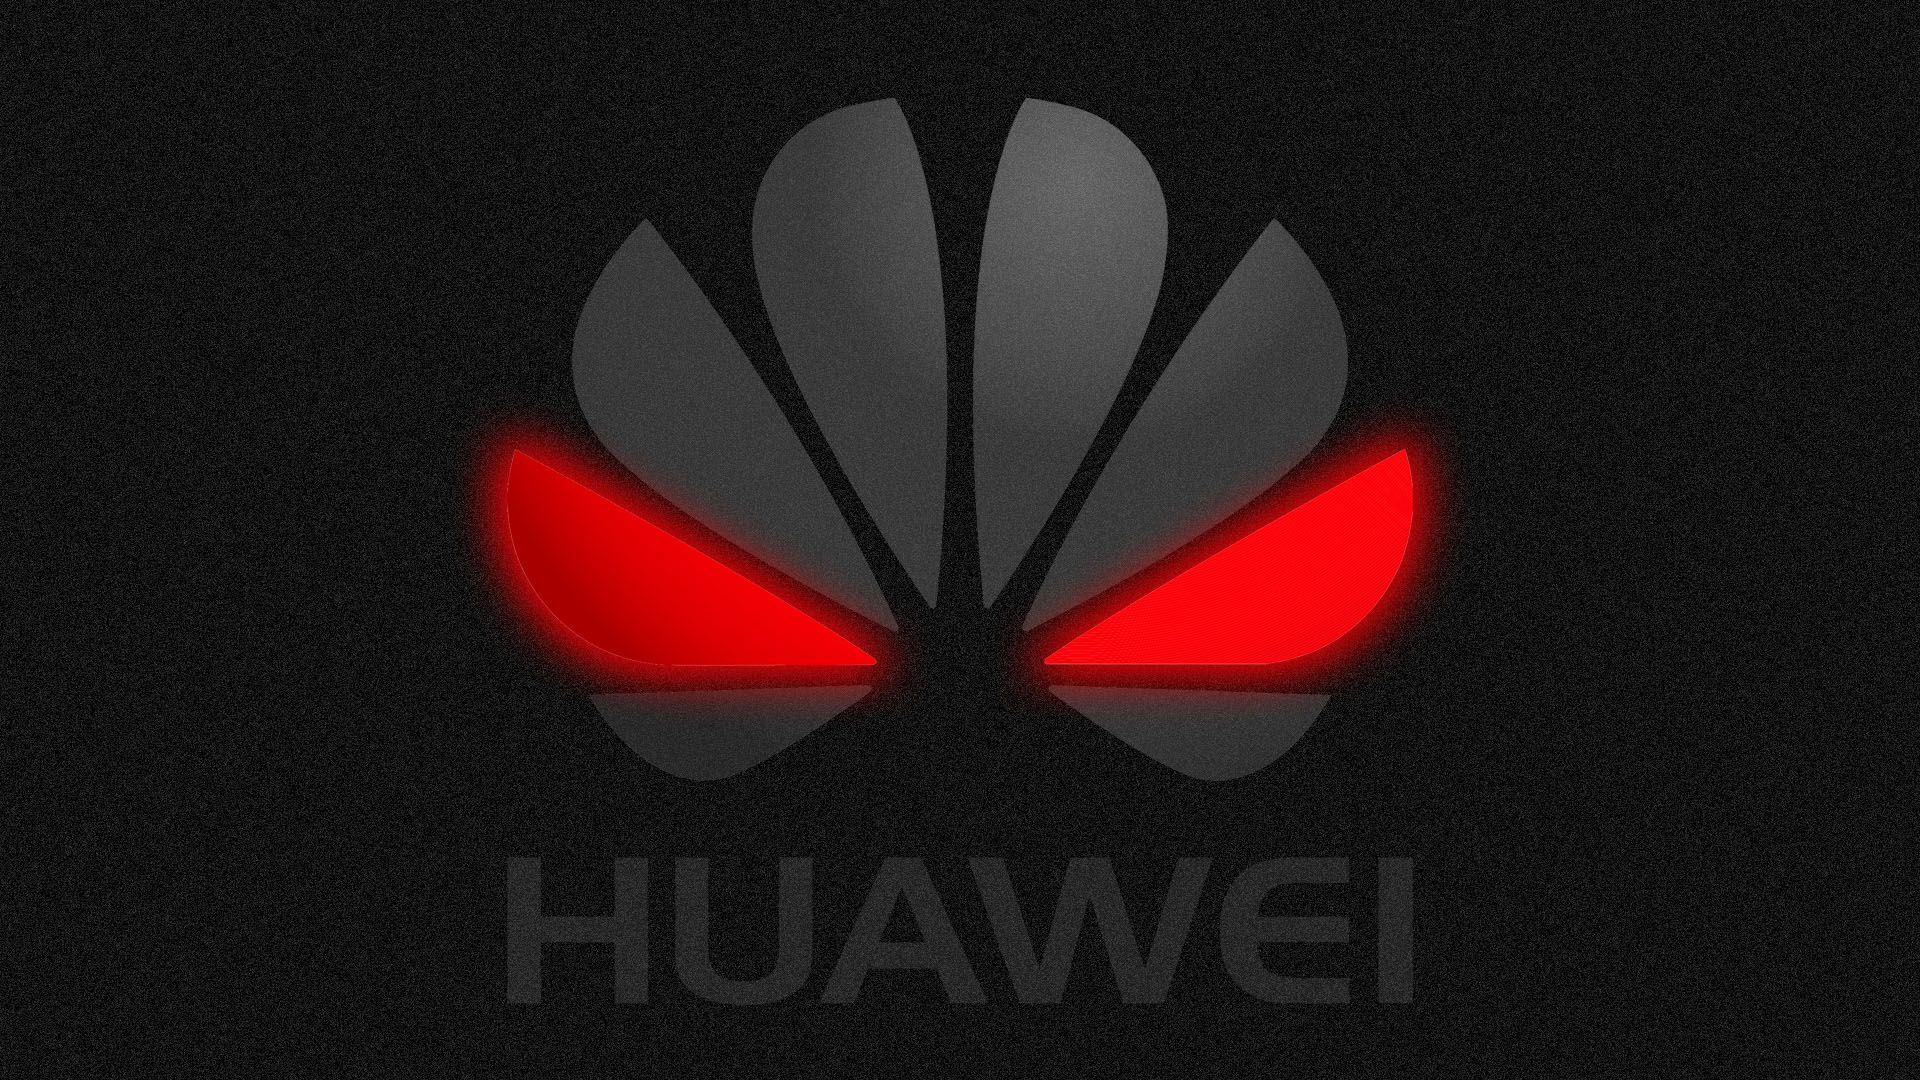 Illustration of Huawei logo with red glowing eyes